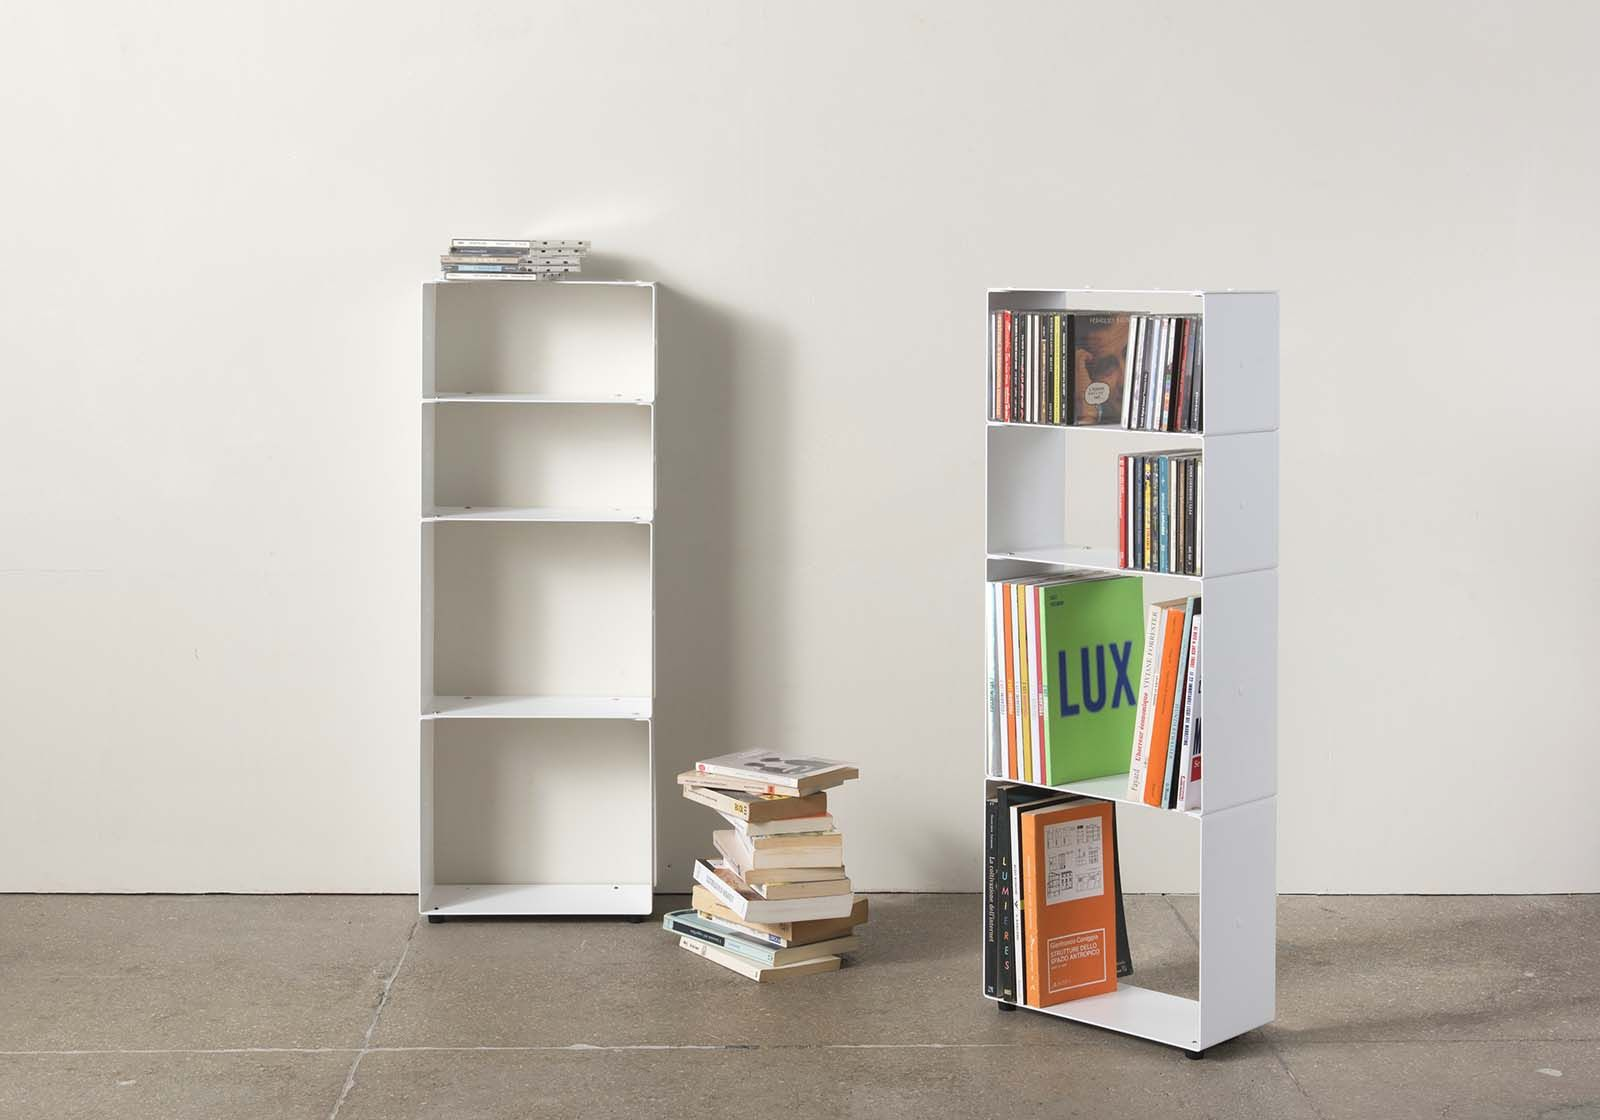 White Bookcase For Books And Cds W30 H80 D15 Cm - 4 Shelves